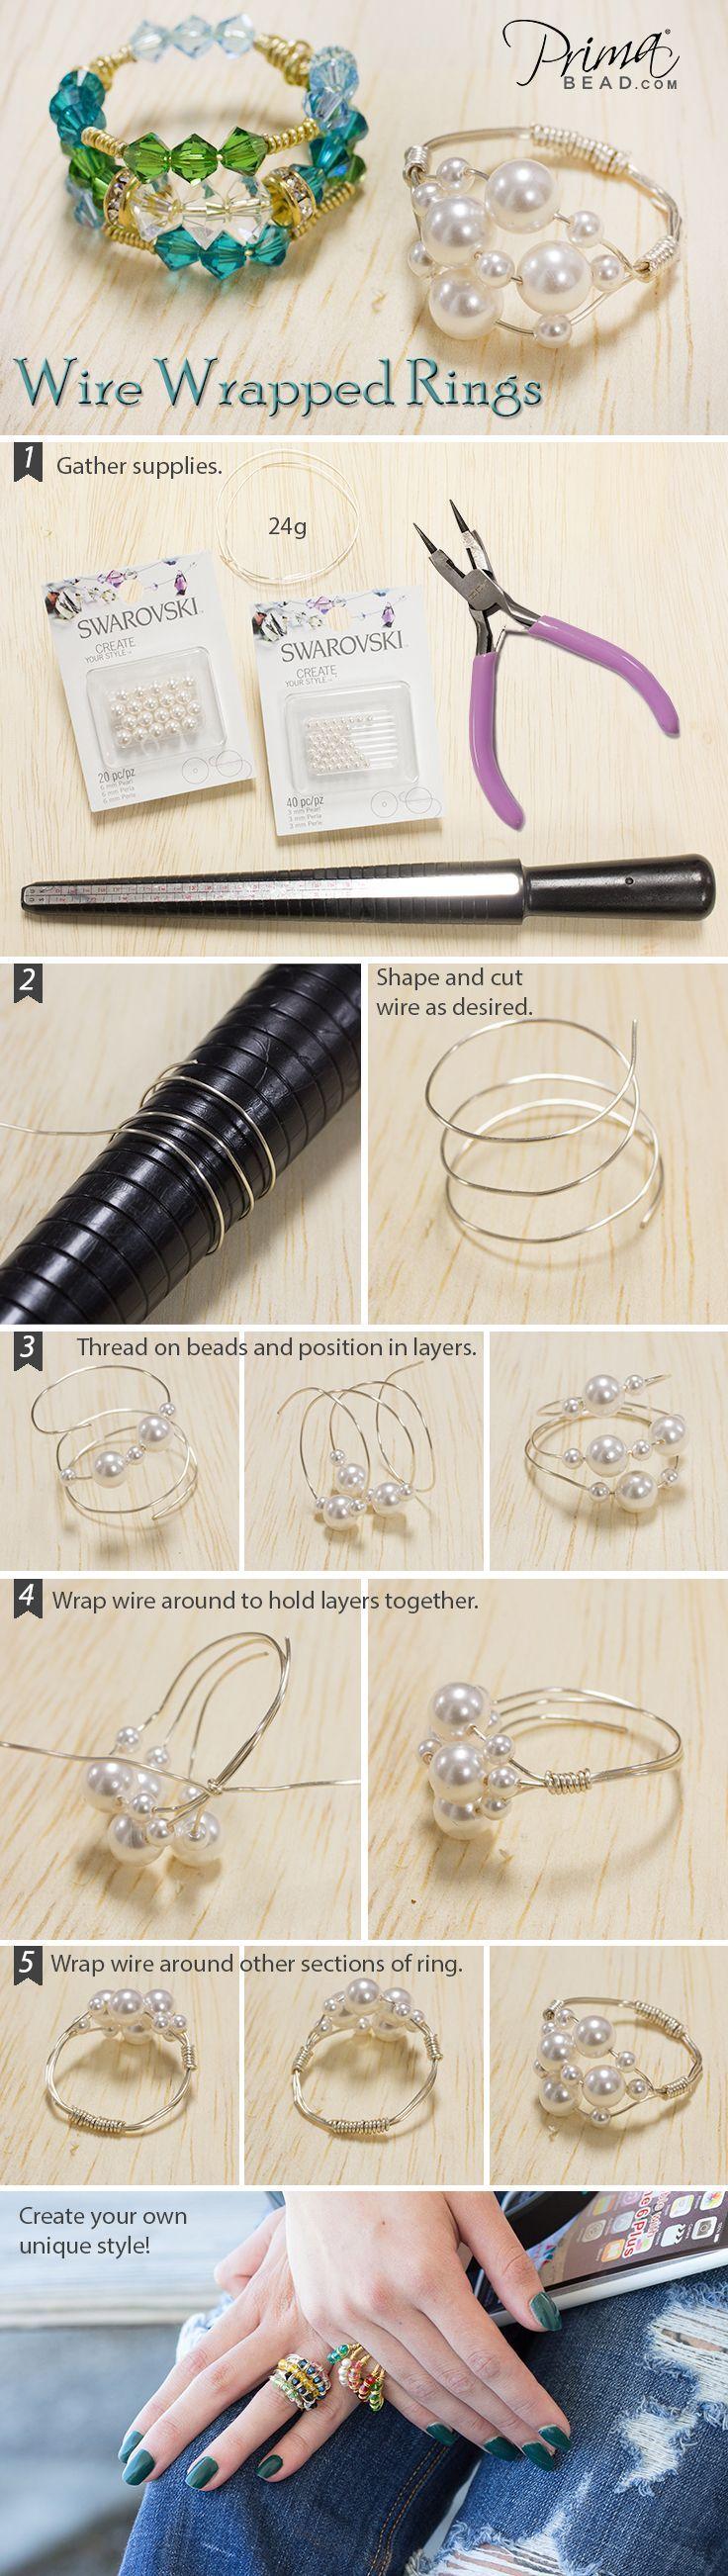 anleitung draht ring mit perlen biegen wire wrapped rings wire jewelry pinterest. Black Bedroom Furniture Sets. Home Design Ideas